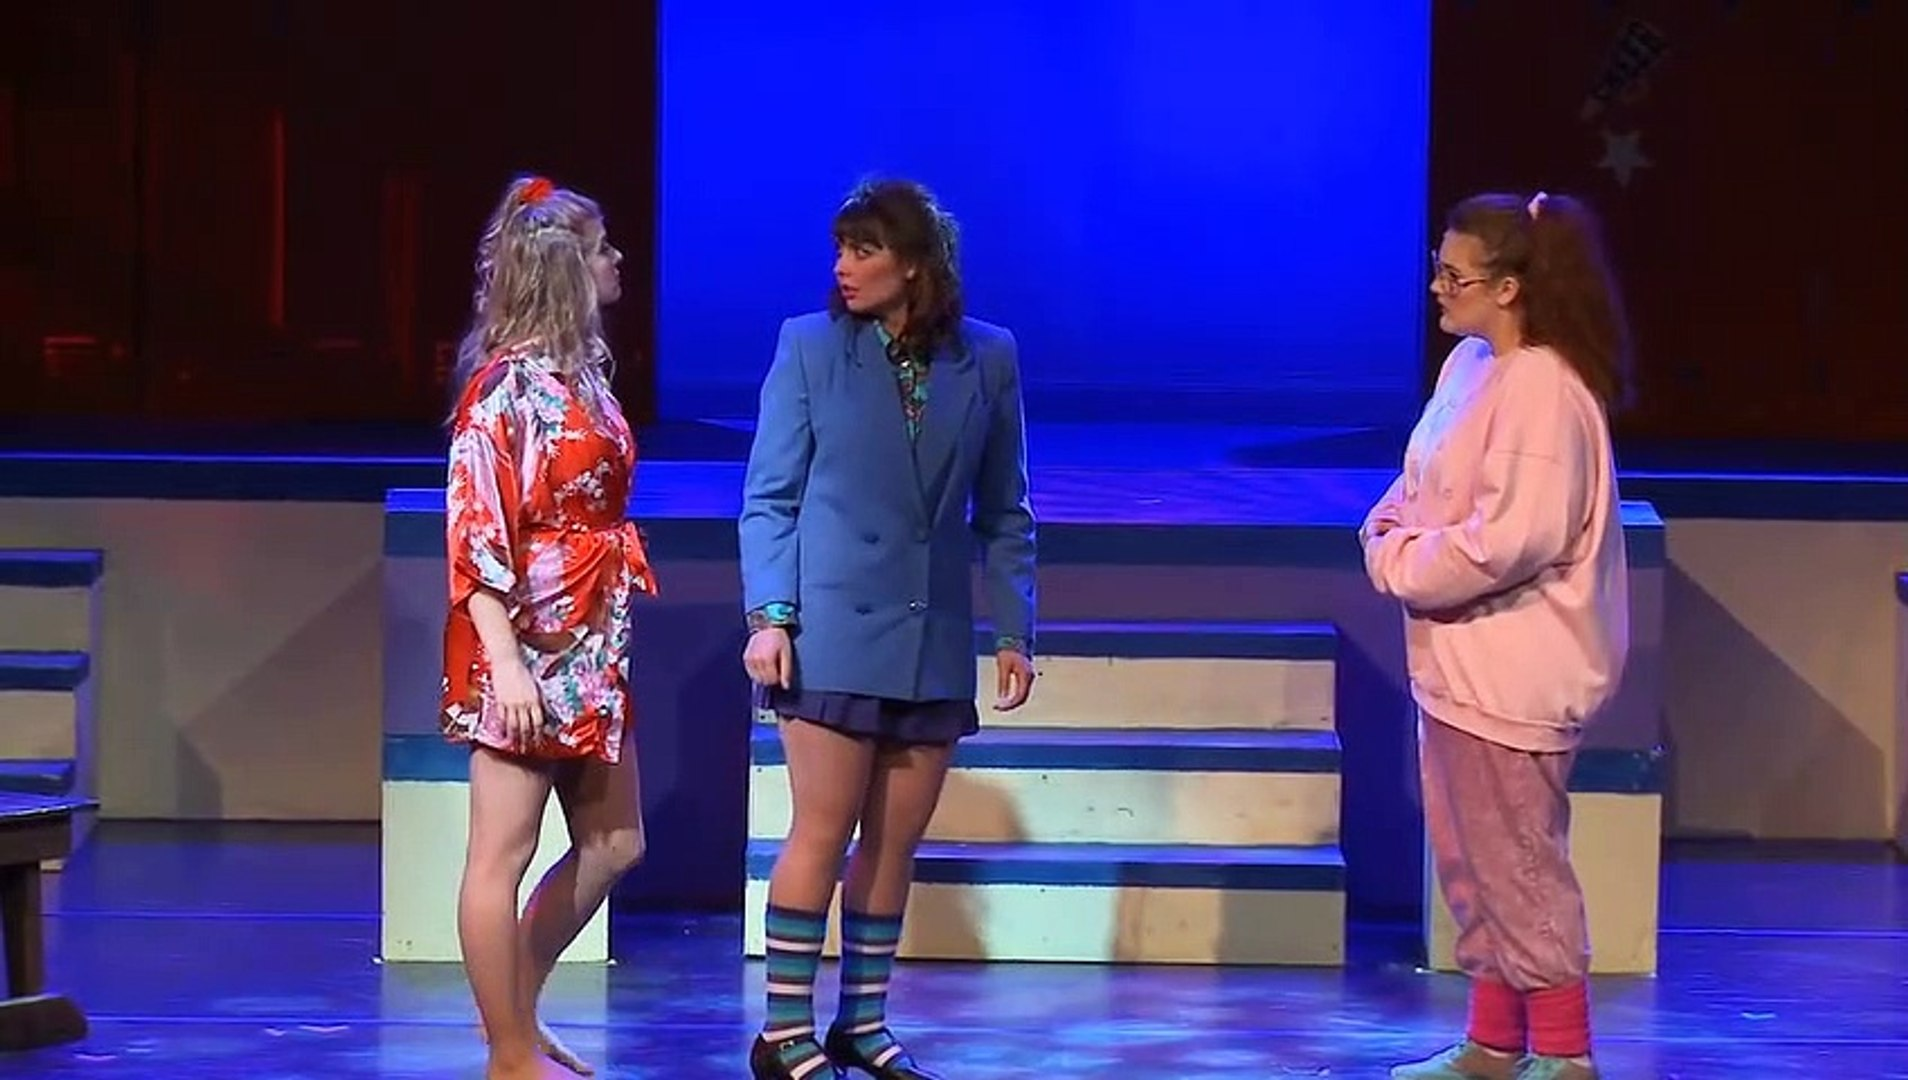 Heathers the Musical Full Show HD presented by Rock River Repertory Theatre  Company 2